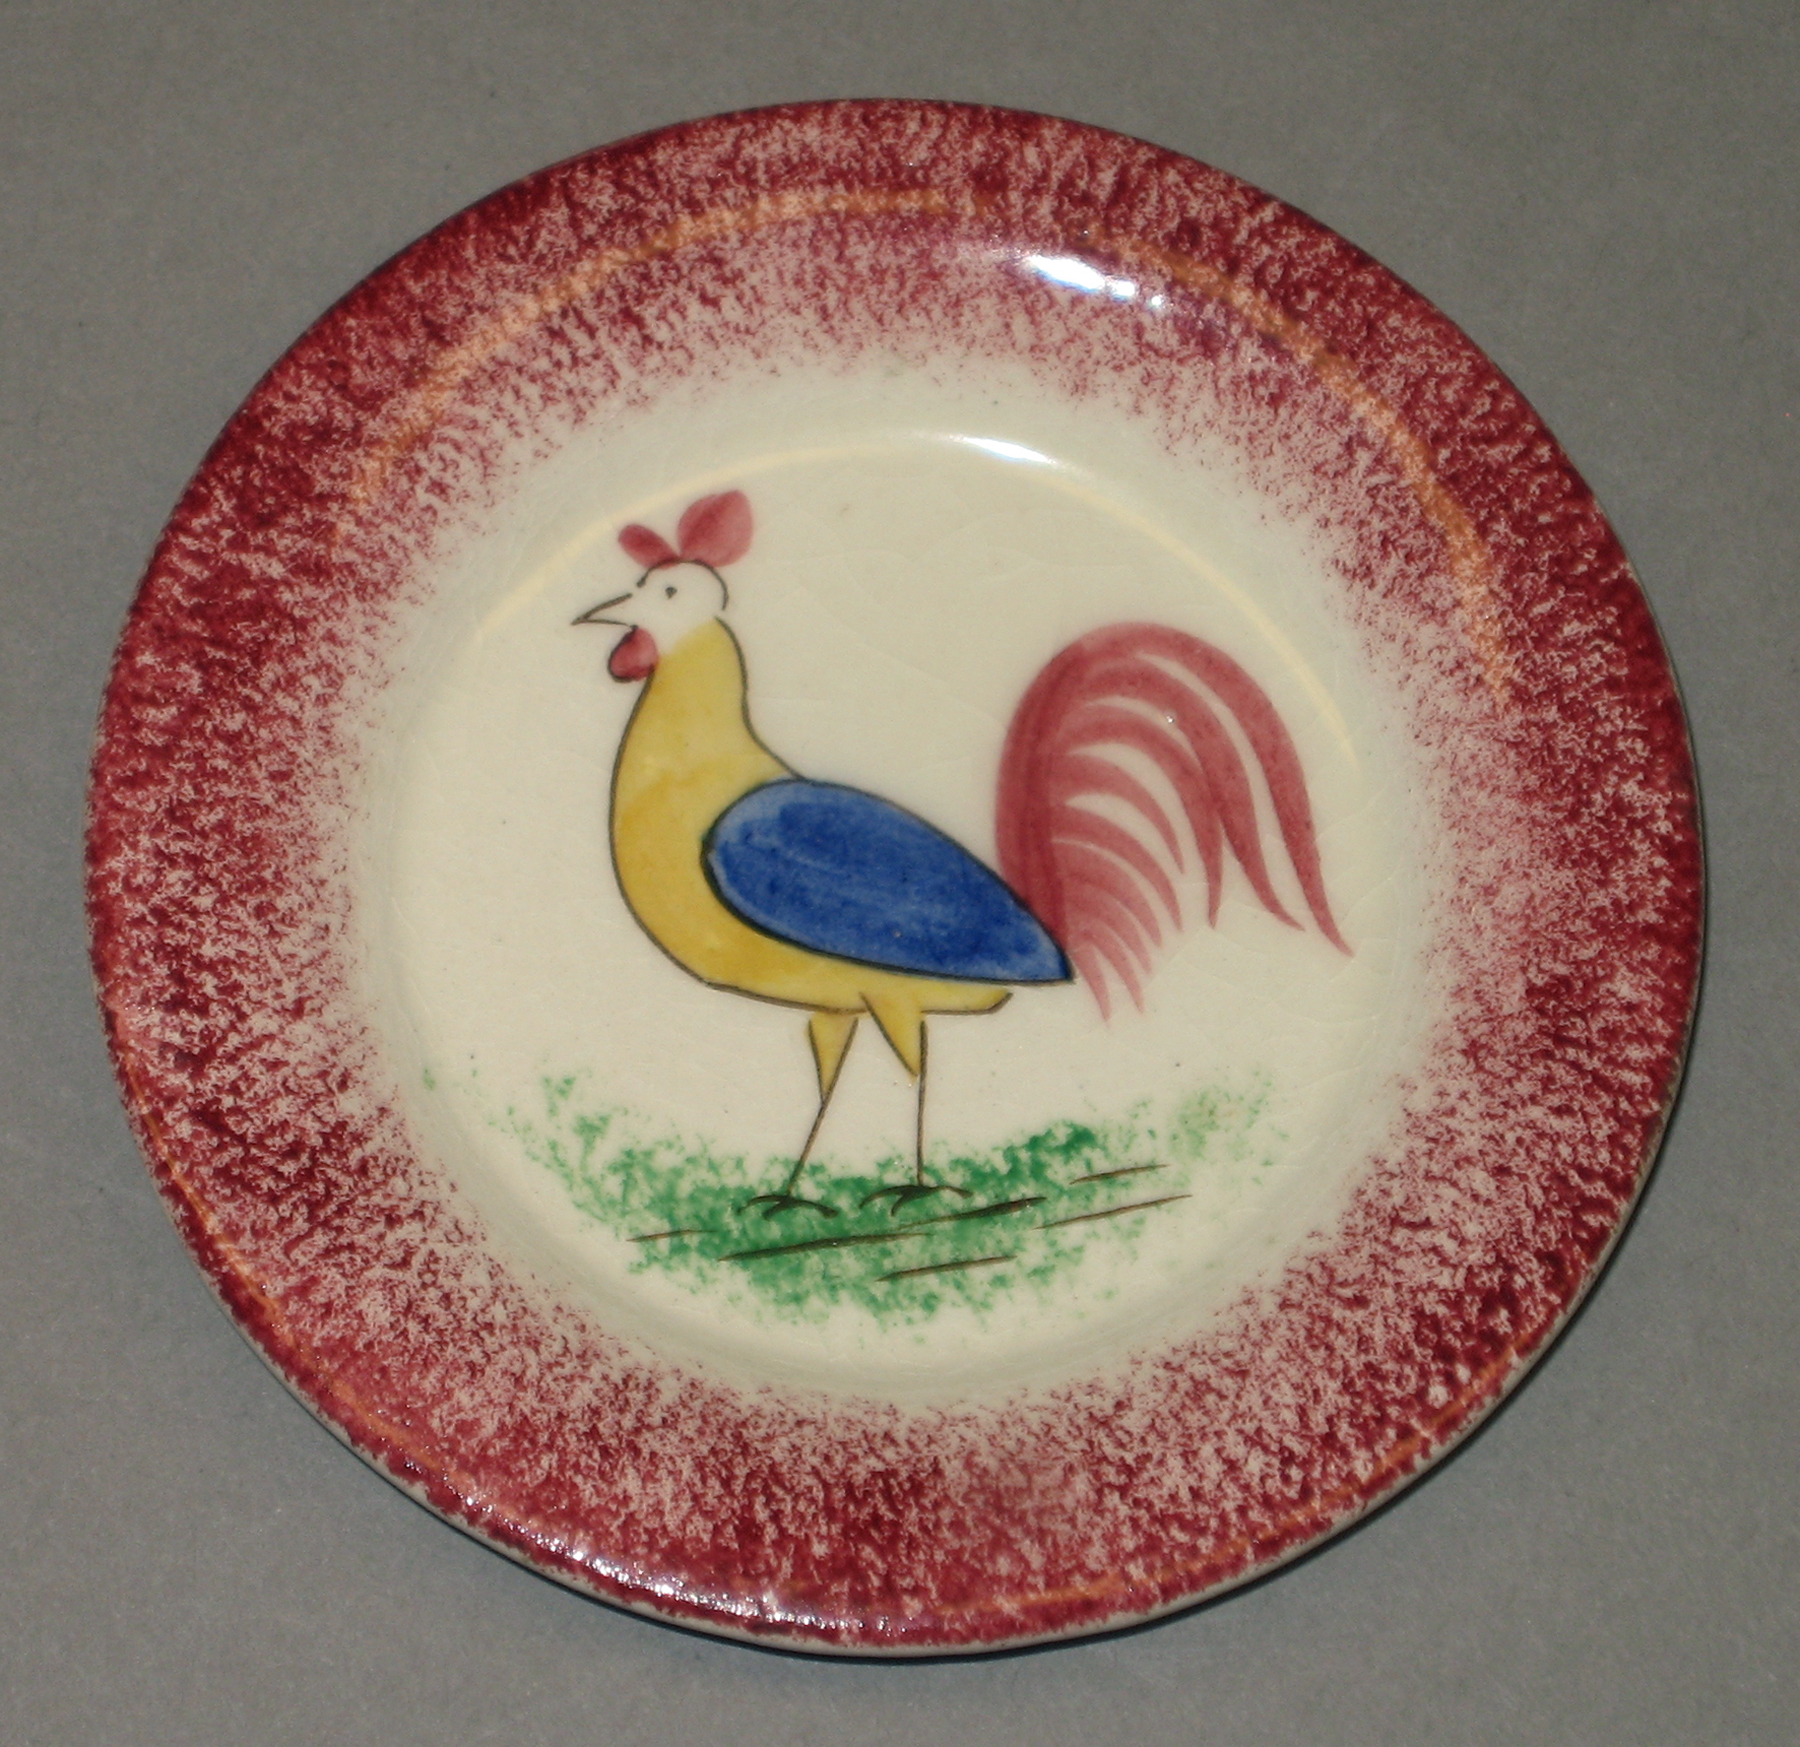 1954.0003.006 Spatterware cup plate